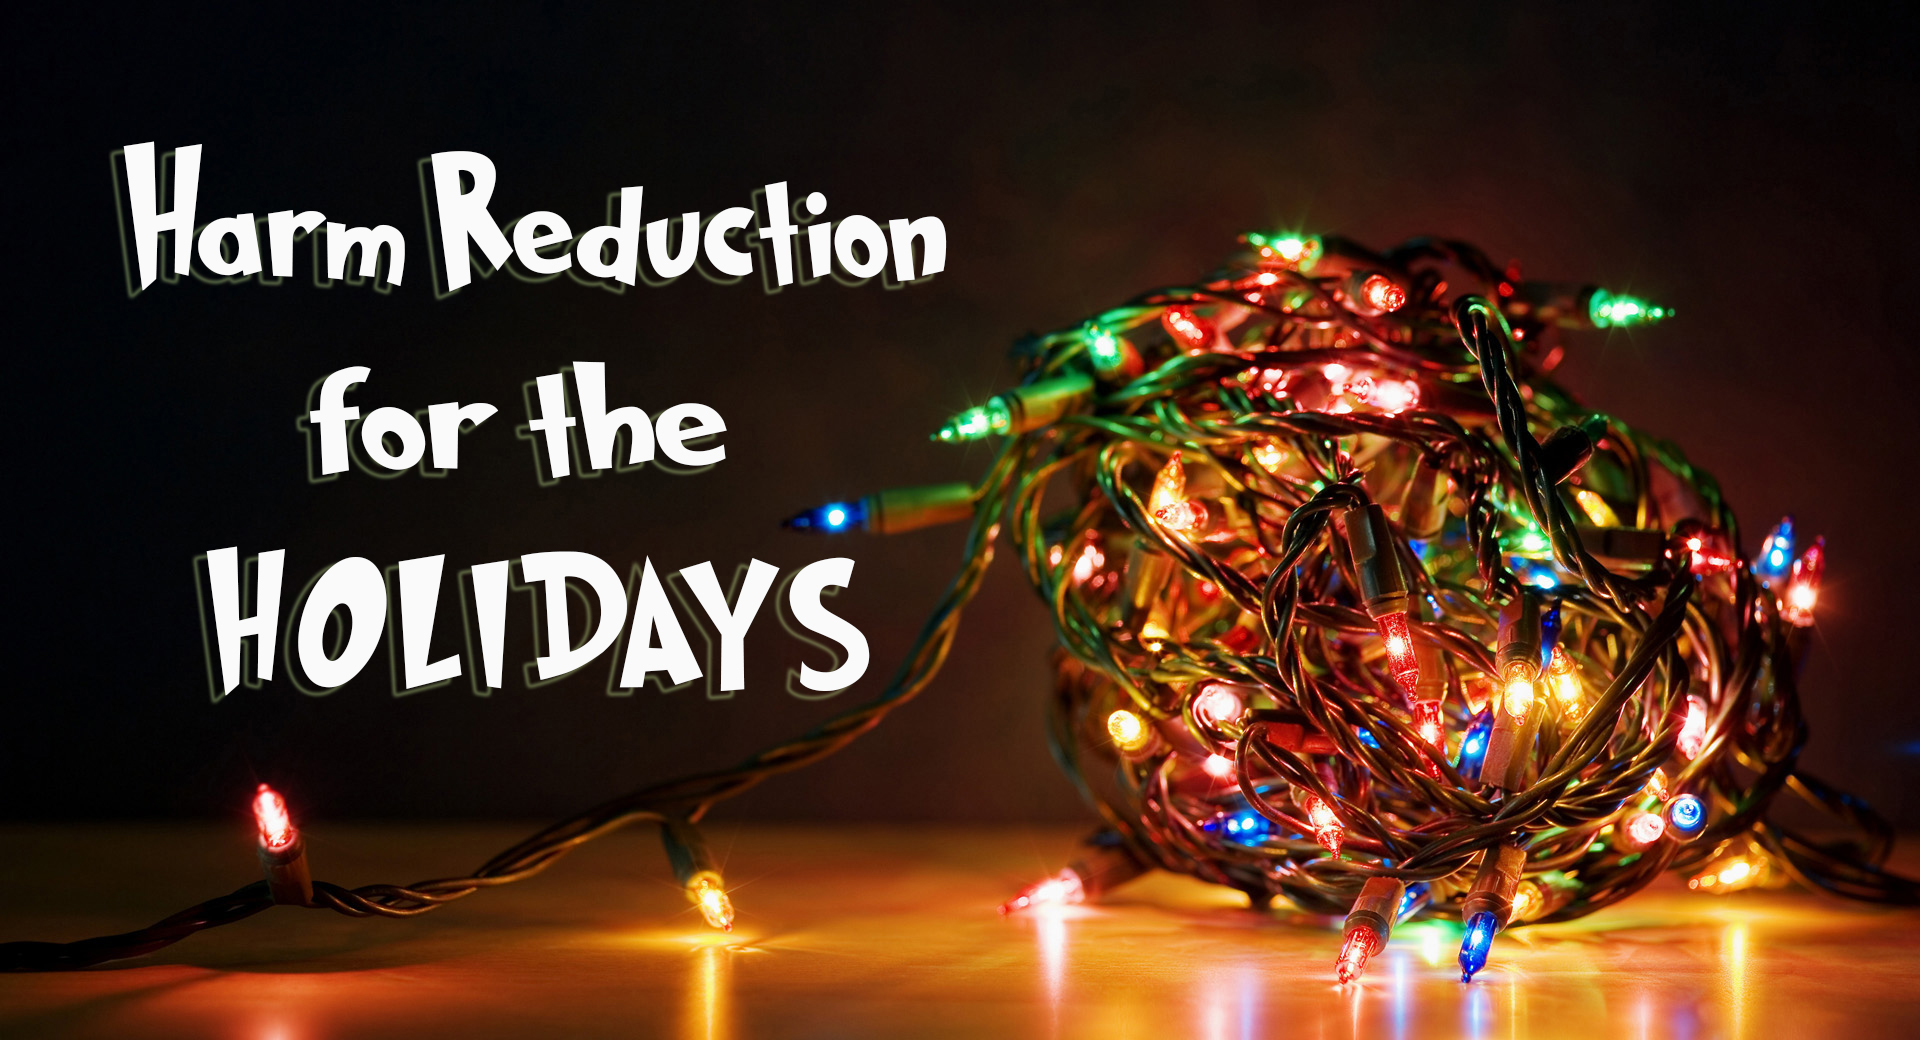 A Tangled Ball Of Christmas Lights: HRTC – The Center For Harm Reduction